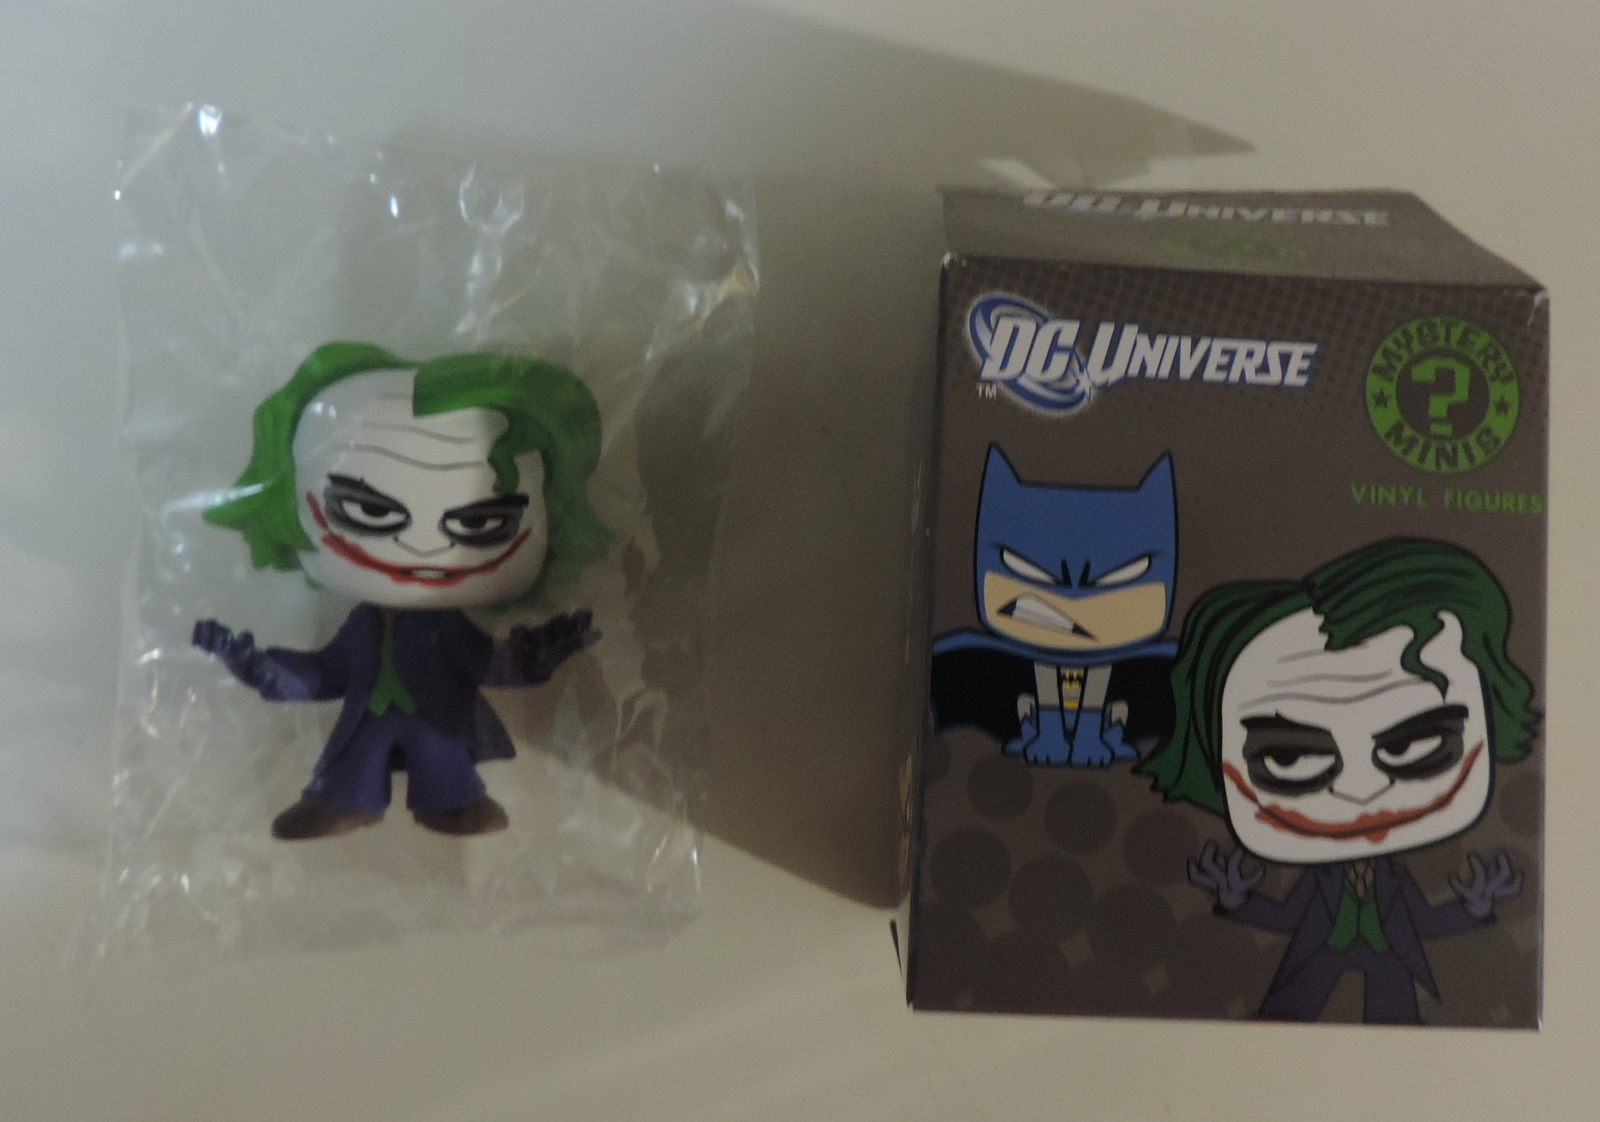 Primary image for DC Universe Comics Funko Mystery Minis The Dark Knight Rises Joker vinyl figure